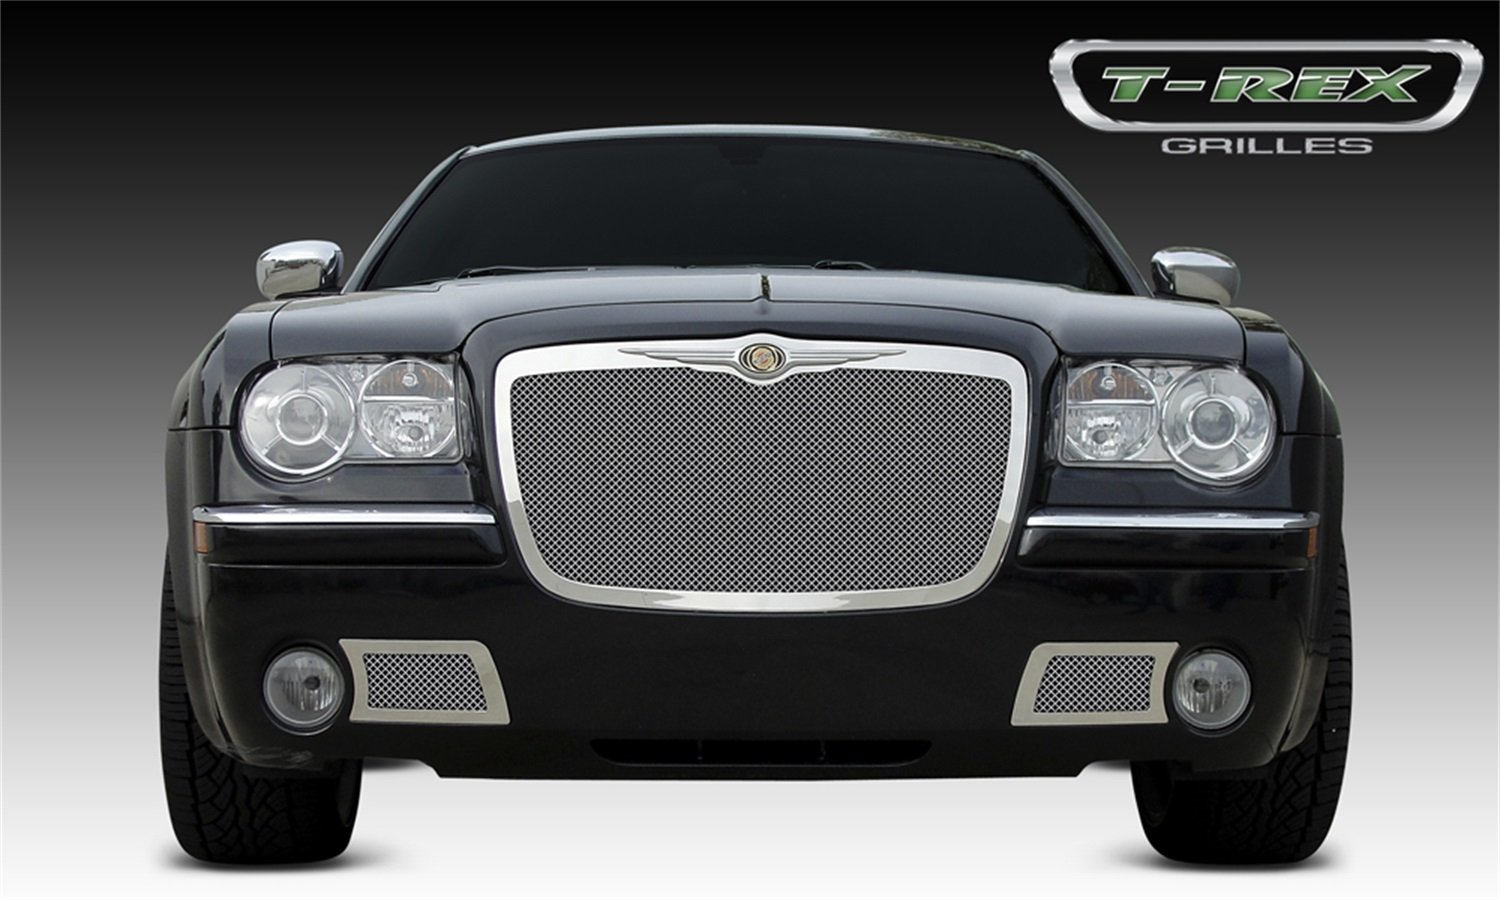 TRex Grilles 54471 Upper Class Small Mesh Stainless Polished Finish Replacement Grille for Chrysler 300